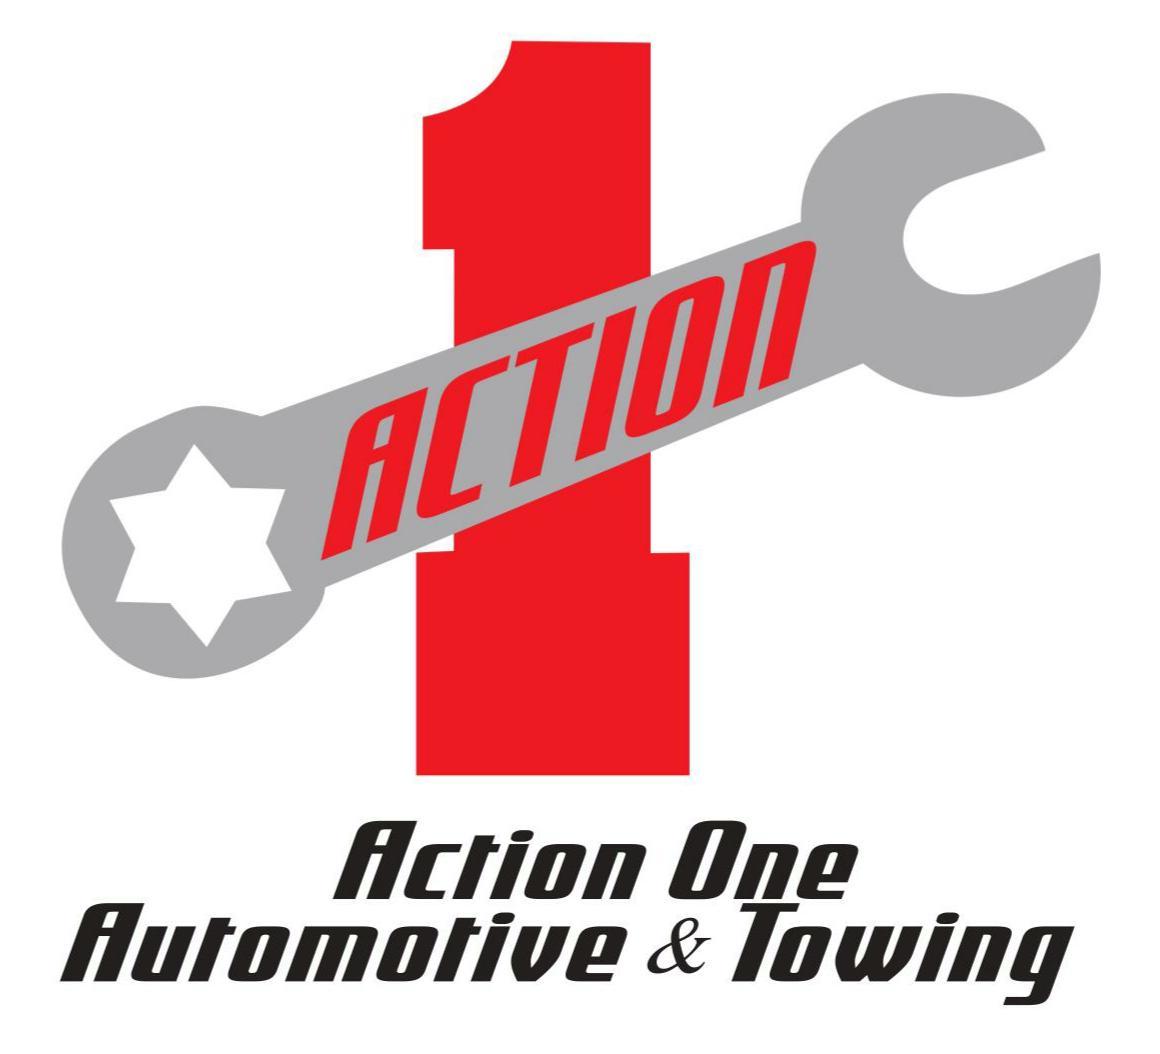 action one logo